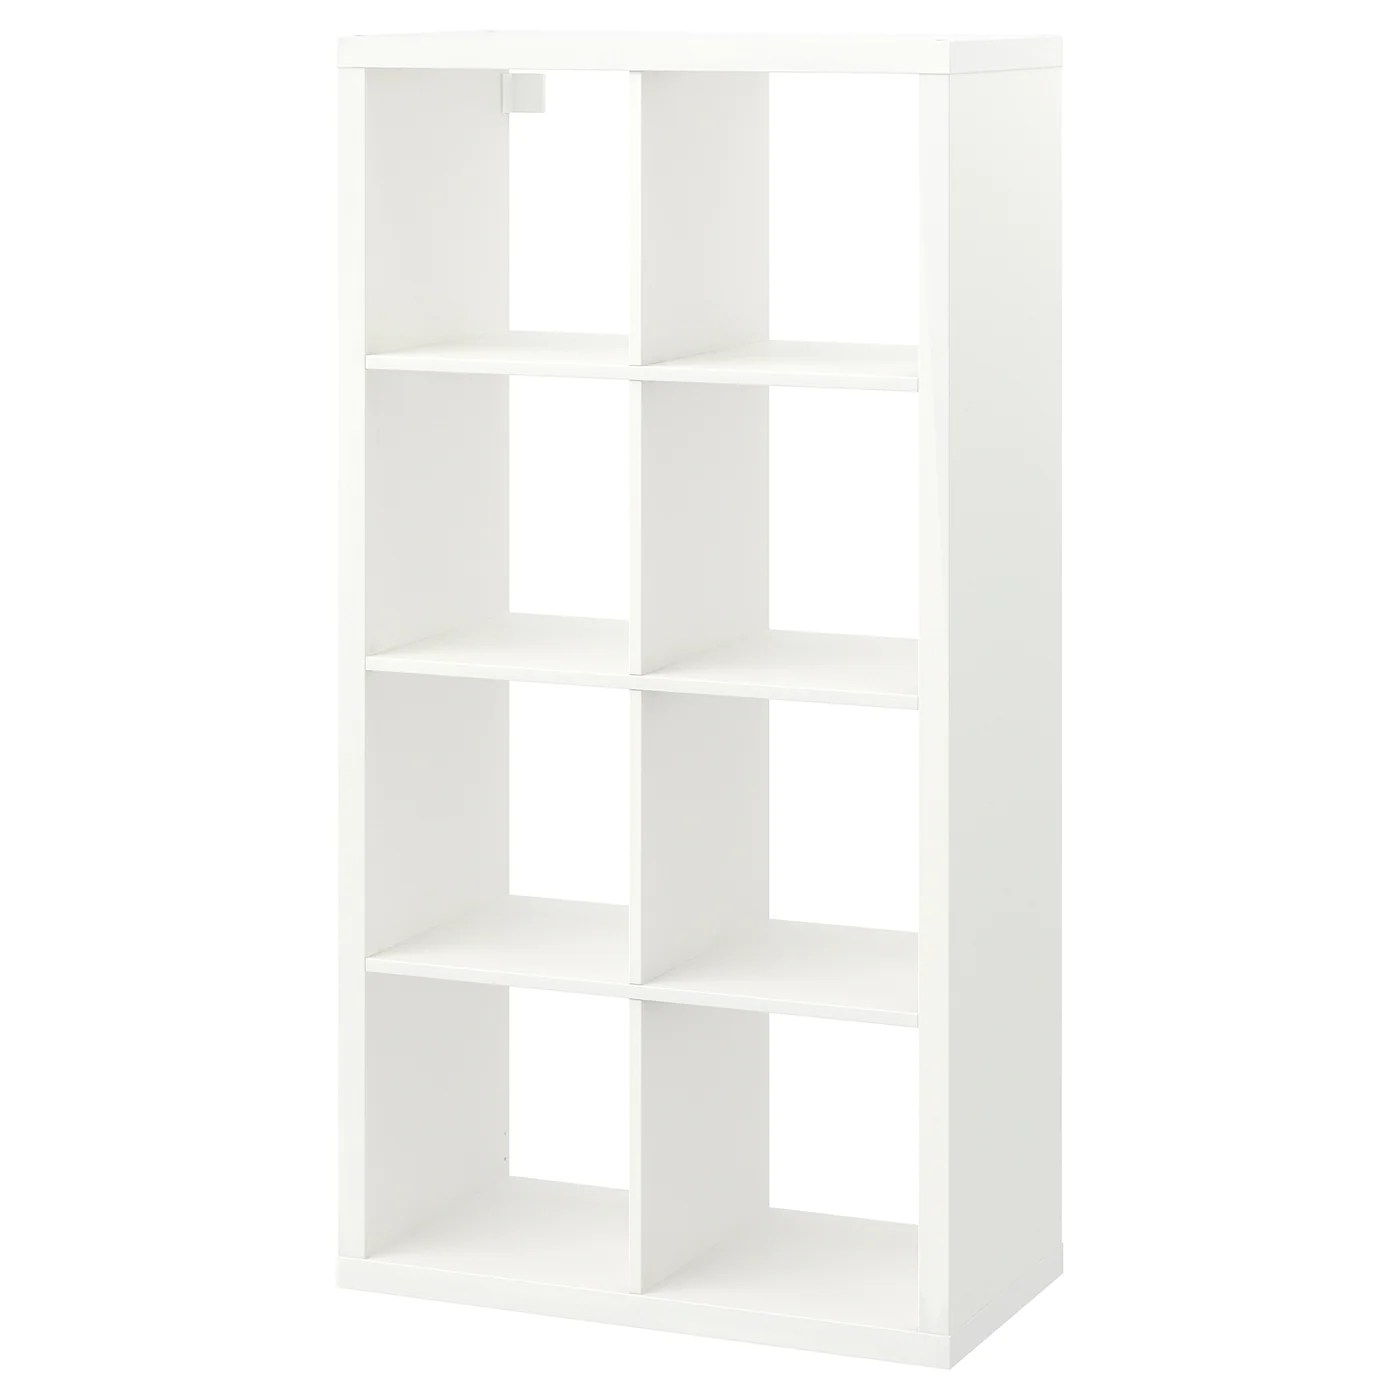 Ikea Expedit Youtube Kallax Insert With Door White 33 X 33 Cm Ikea